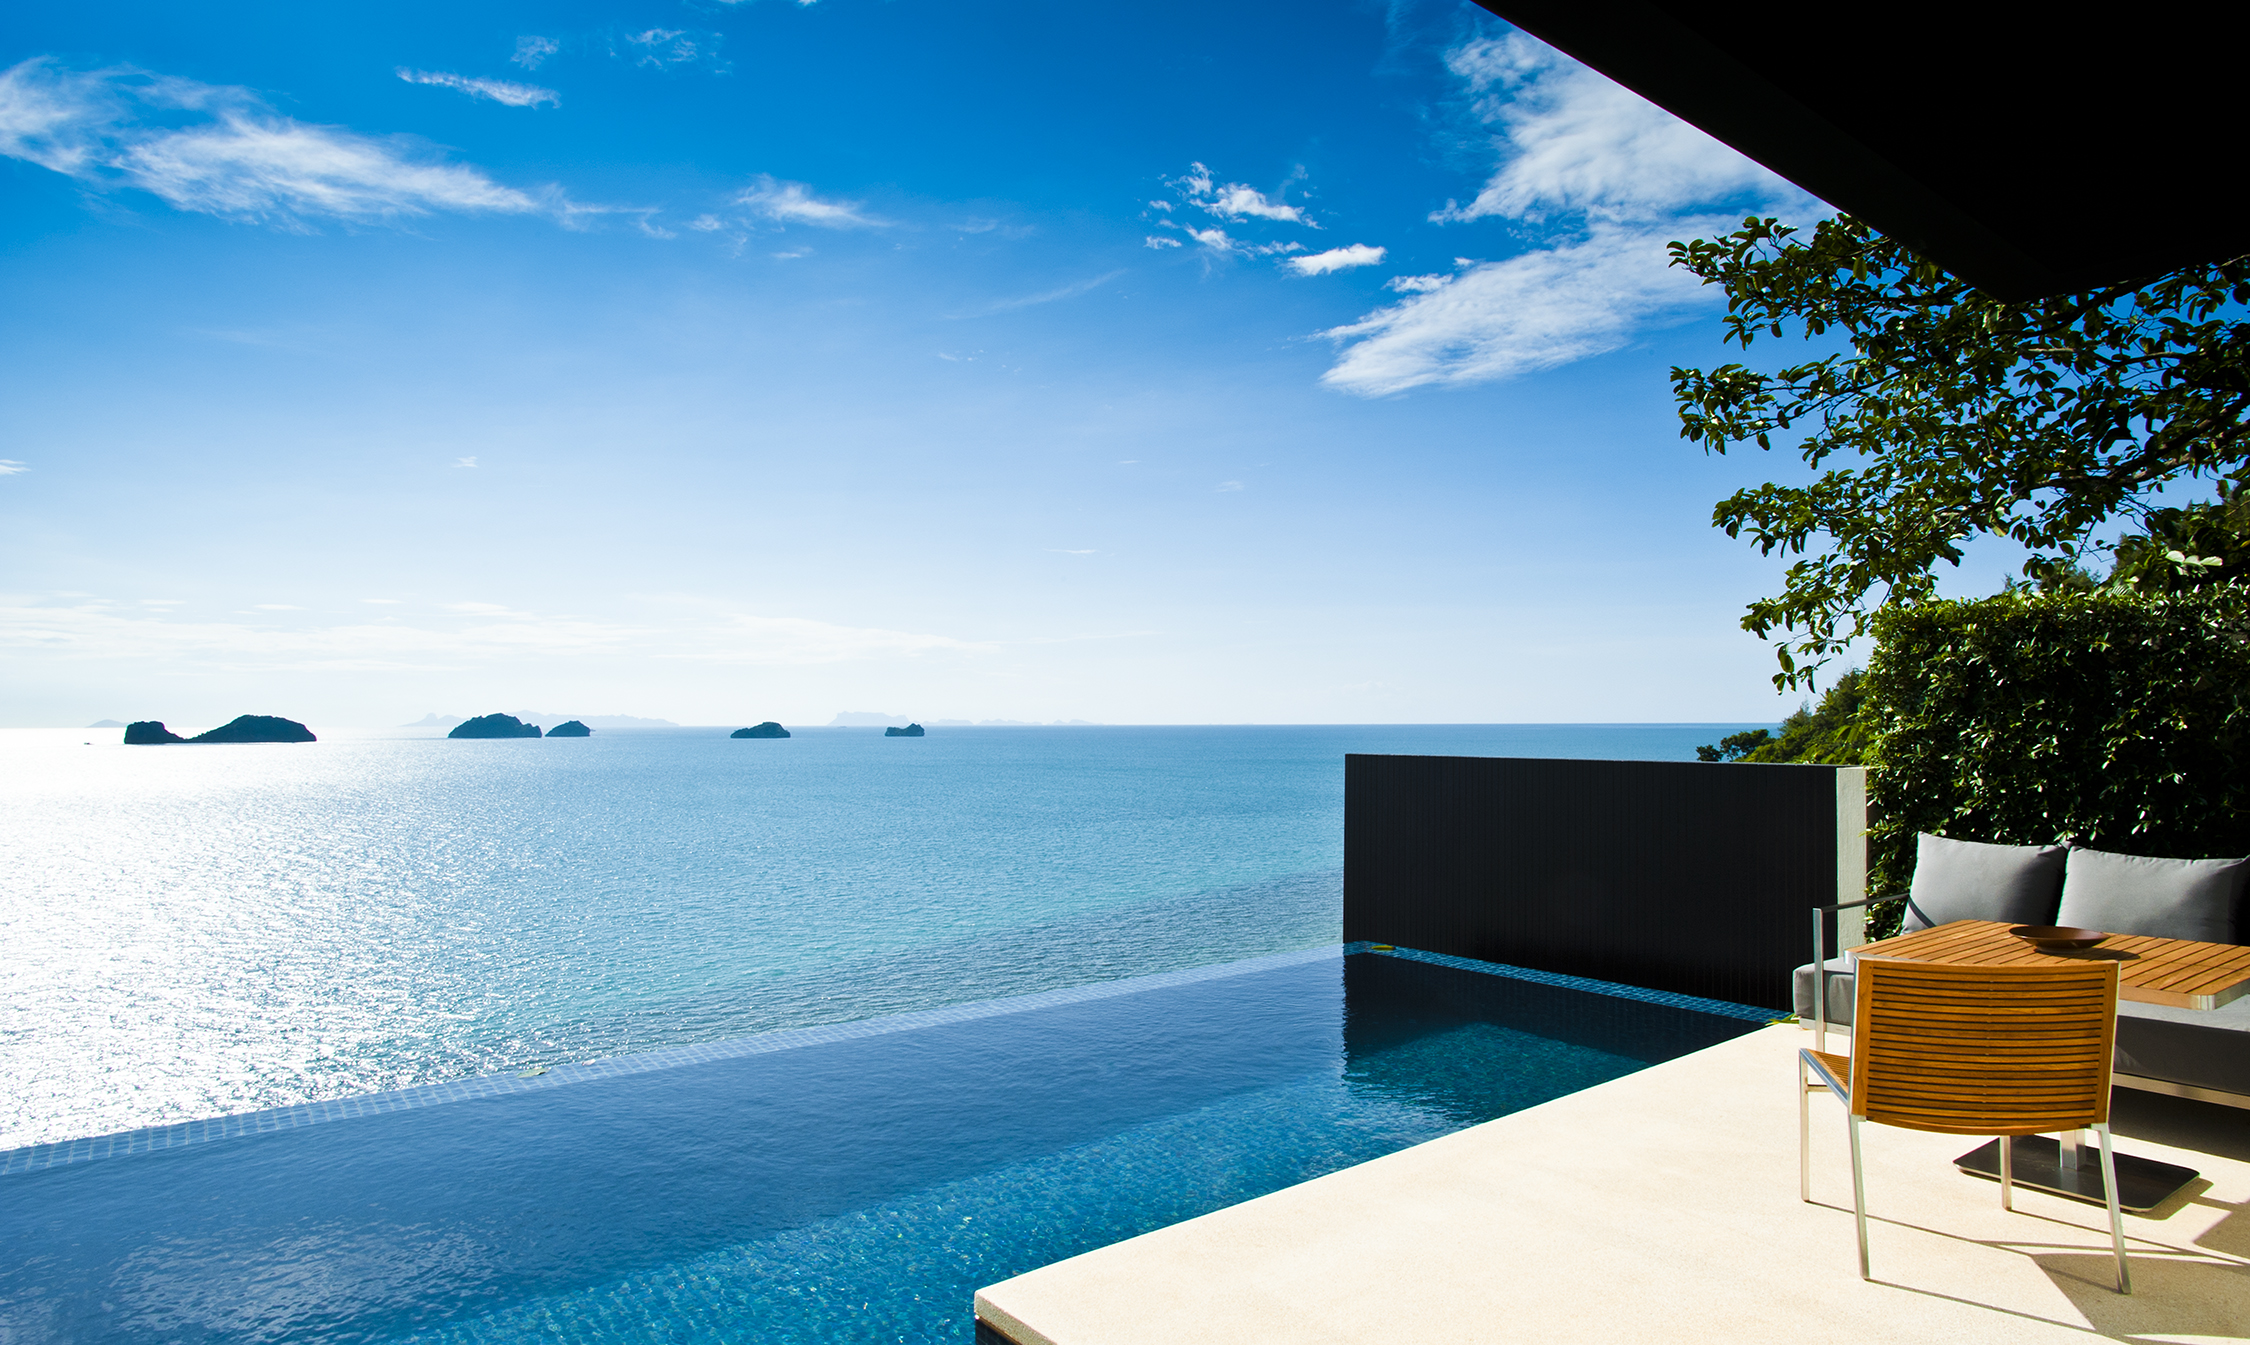 The bedroom and bathroom flow effortlessly onto the outdoor patio and the 10-meter-long private infinity pool, establishing one harmonious space.